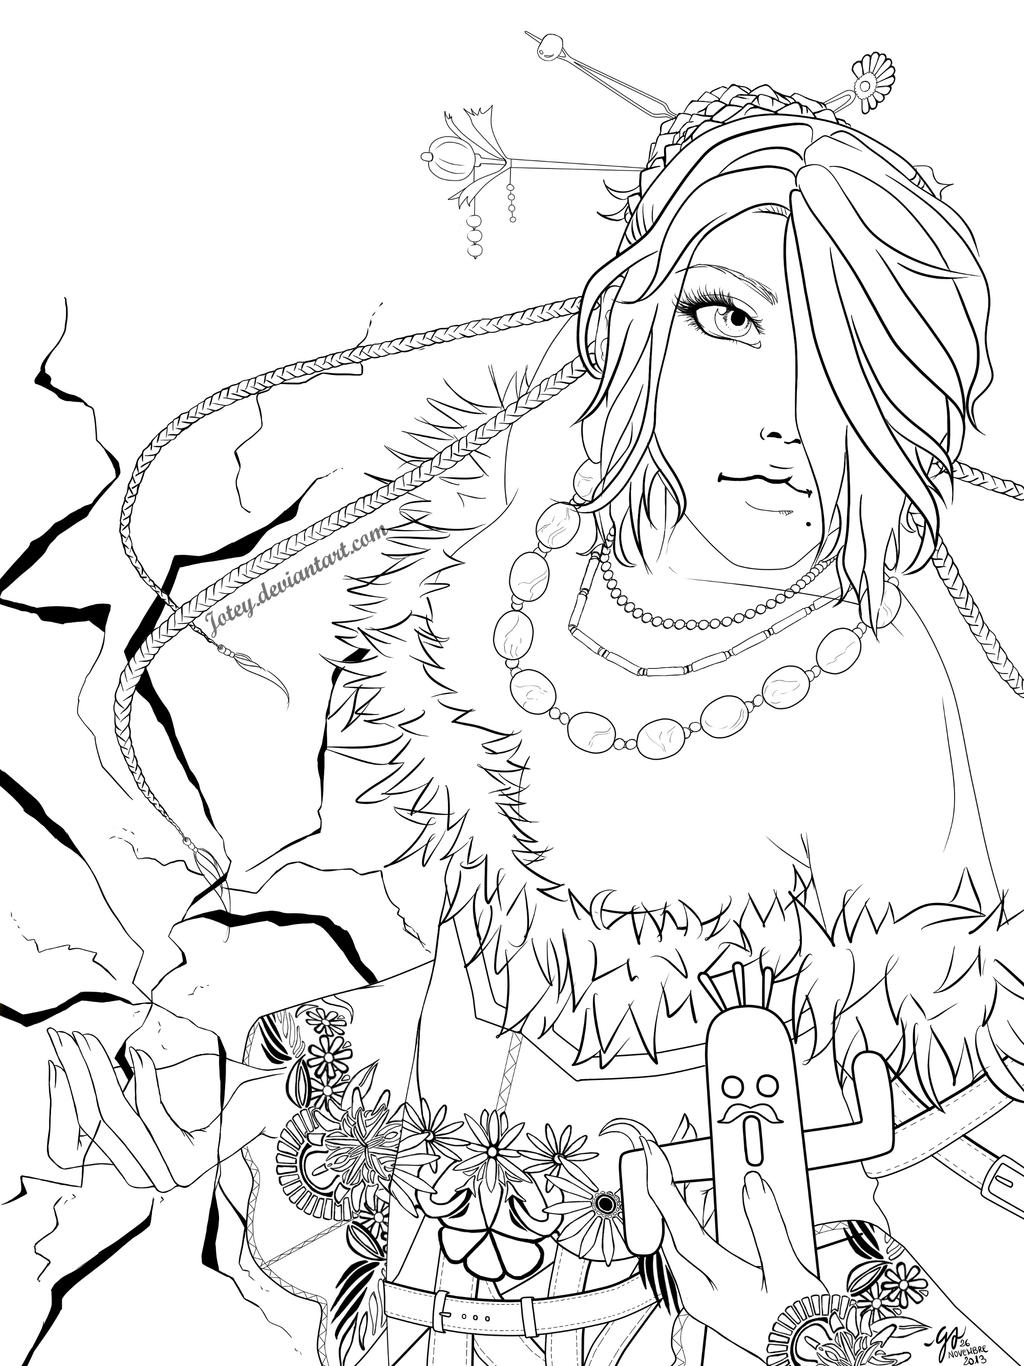 Final Fantasy Free Coloring Pages